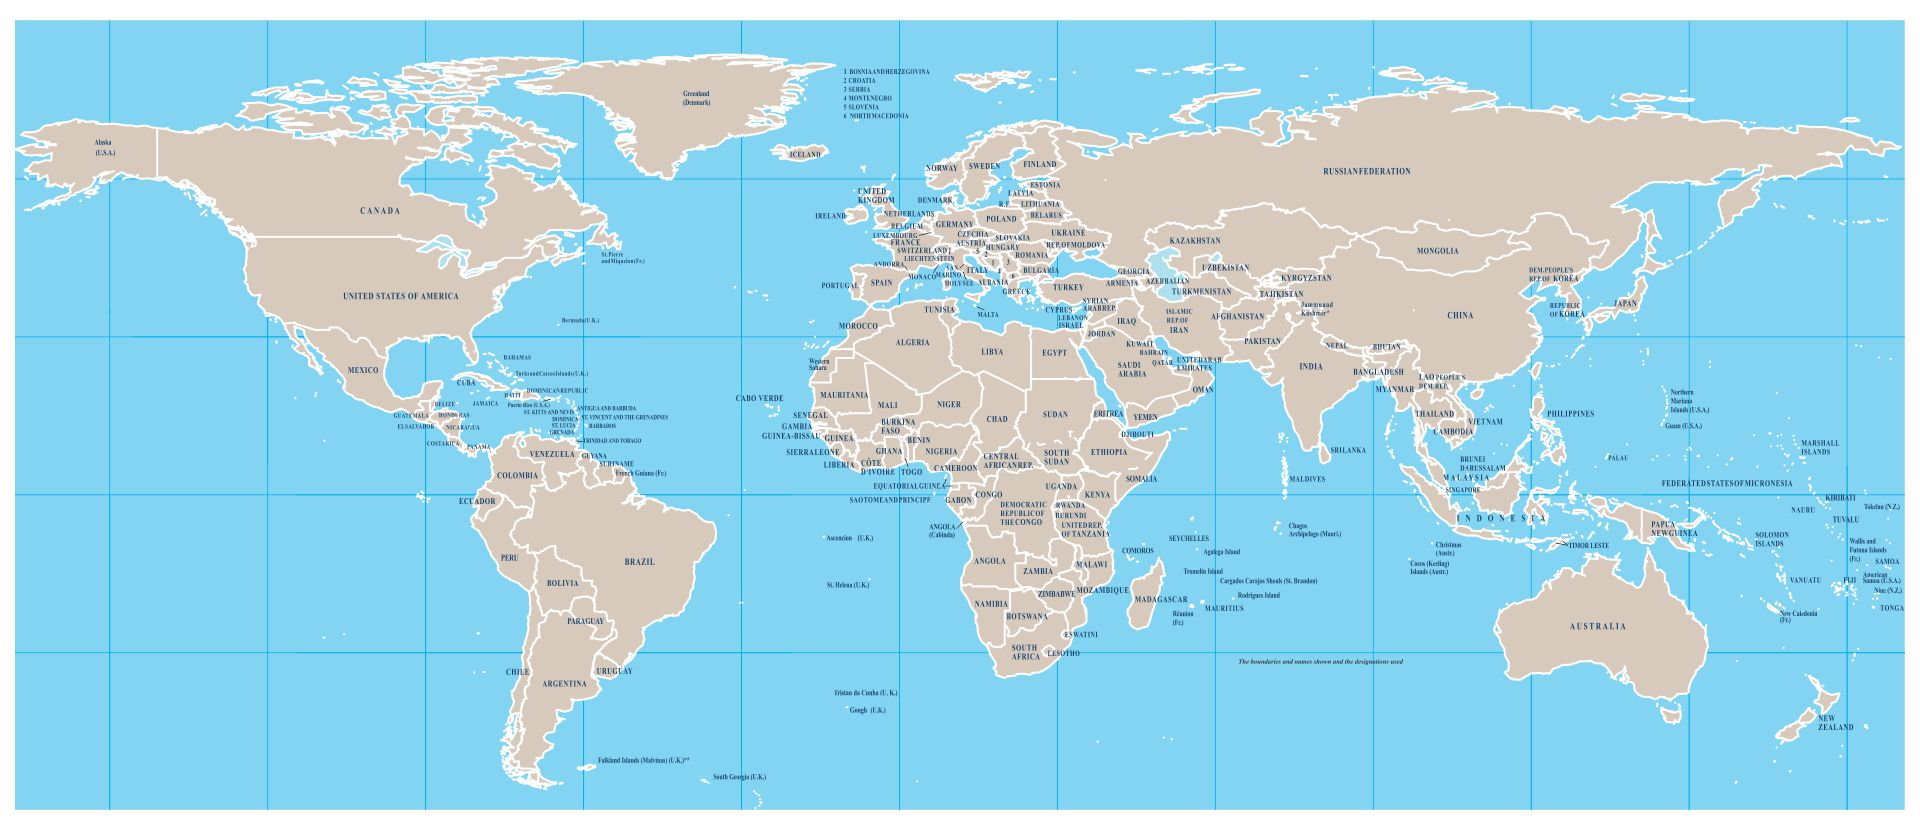 Printable High Resolution World Map With Country Names